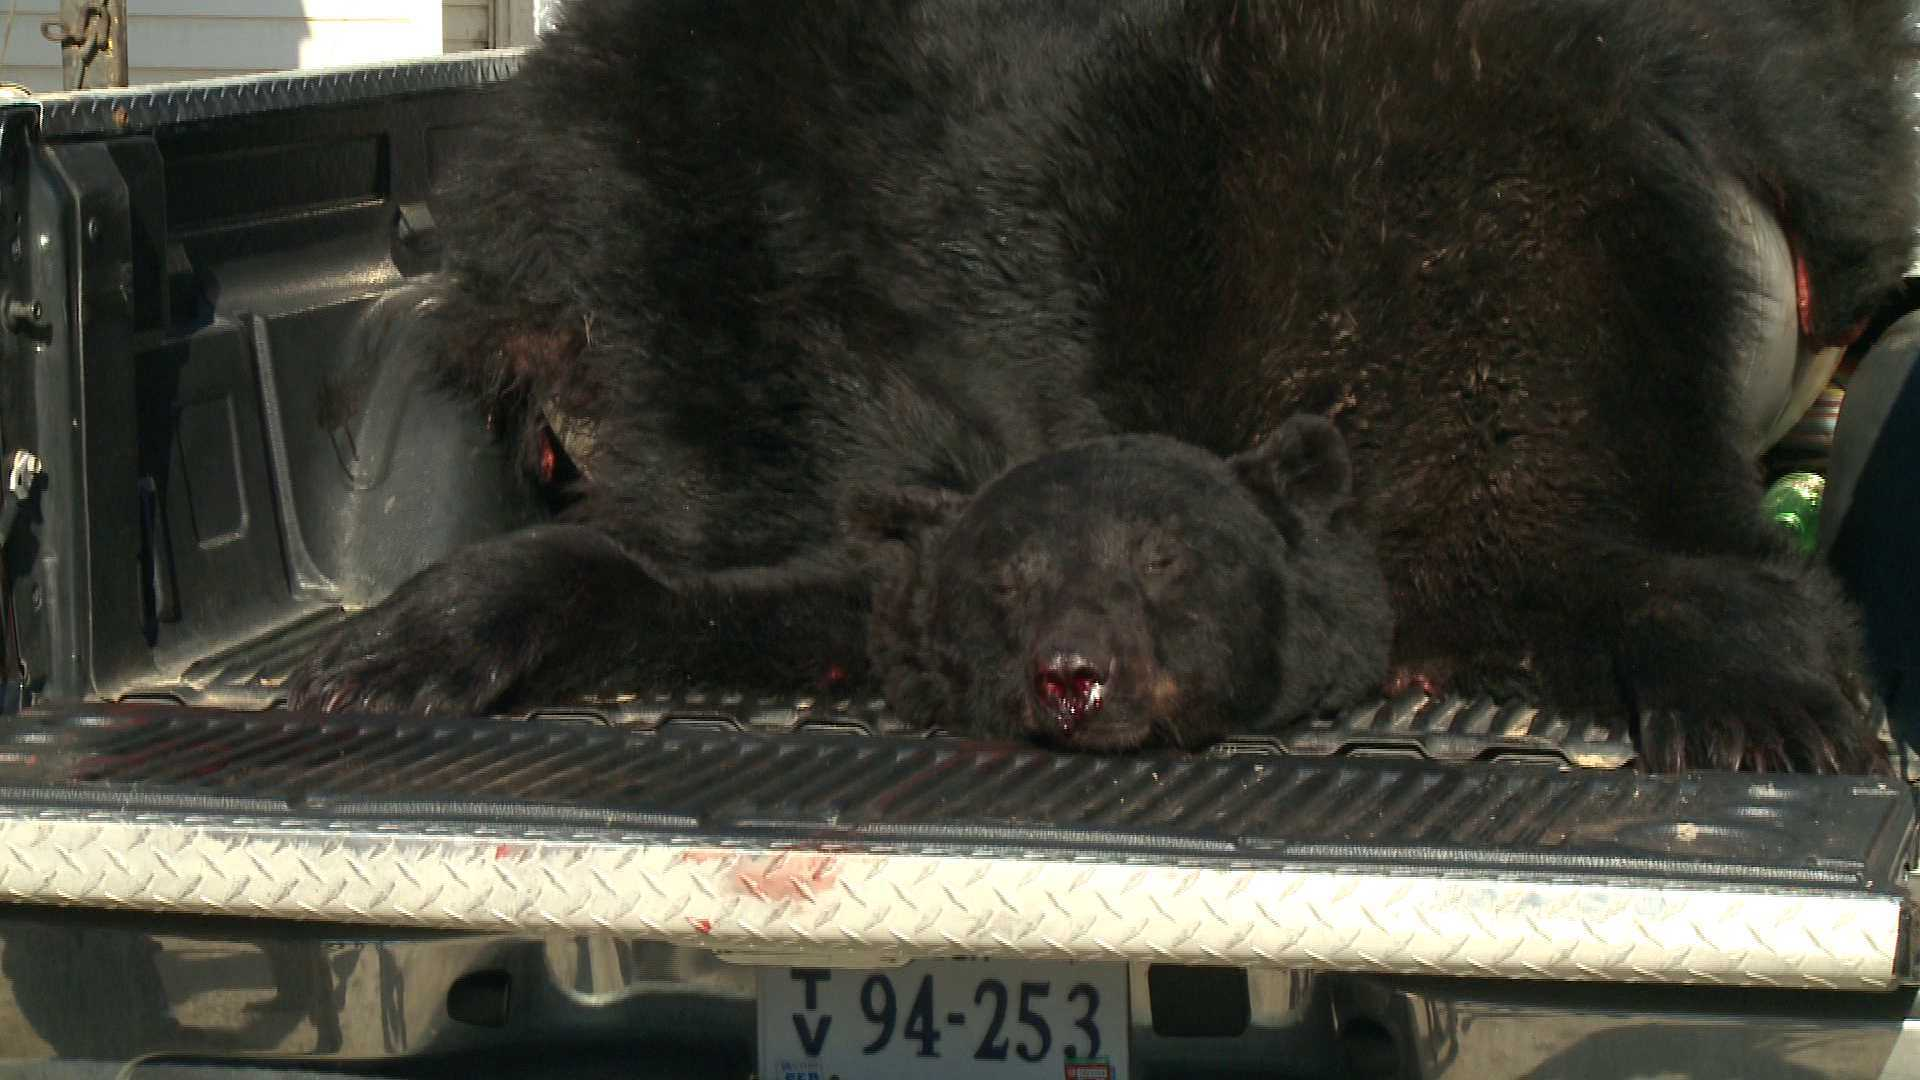 Photos: Hunter bags 674 pound, 9-foot tall bear that could set Va. record